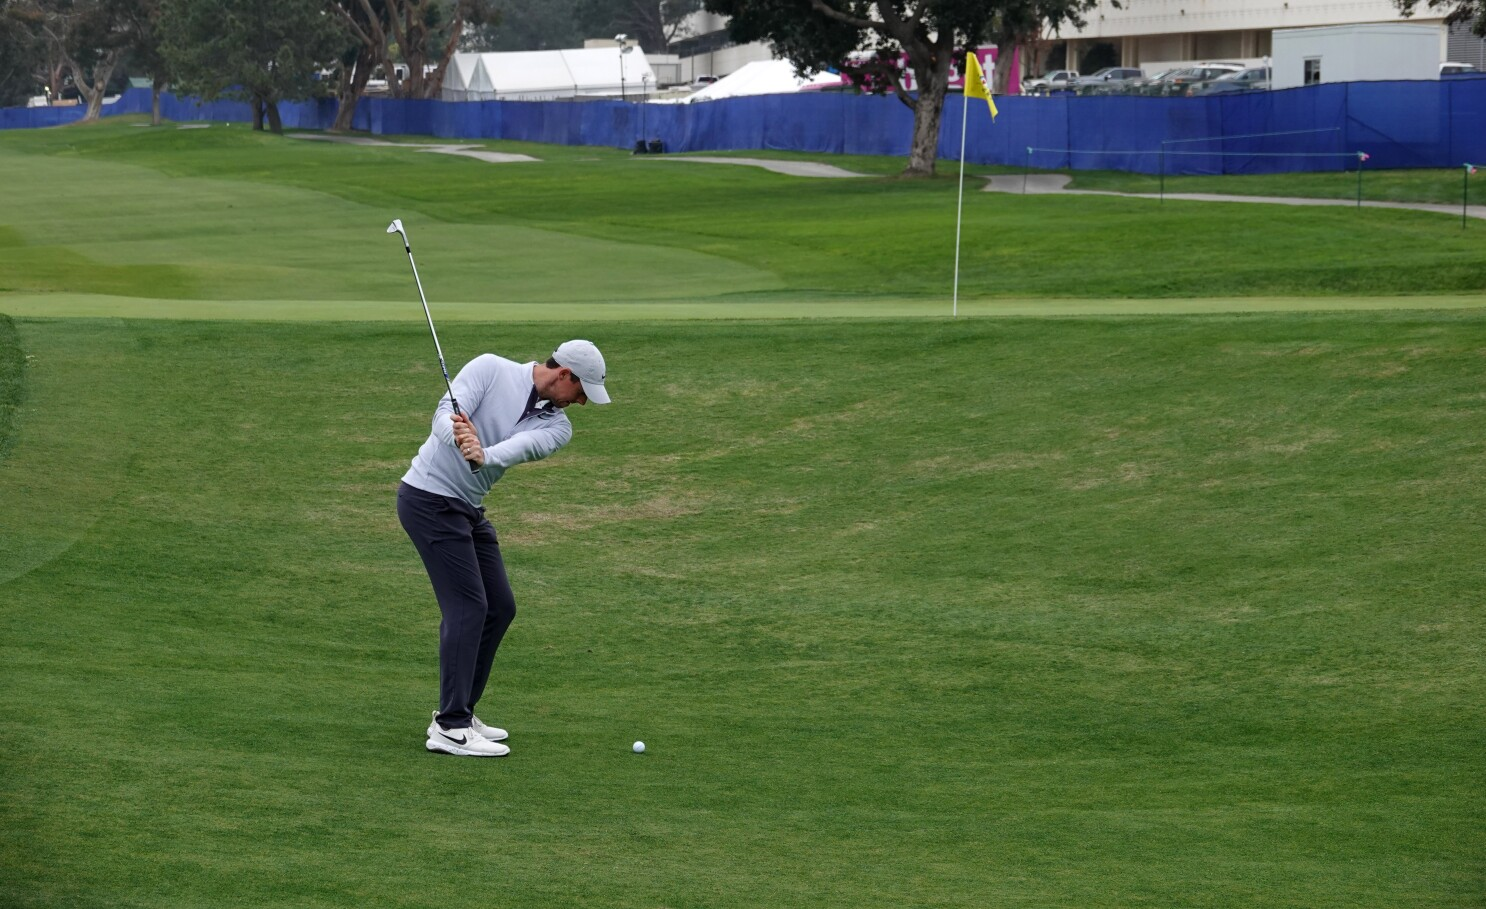 Mixed reviews by players on Torrey Pines South Course renovations heading into Farmers Open